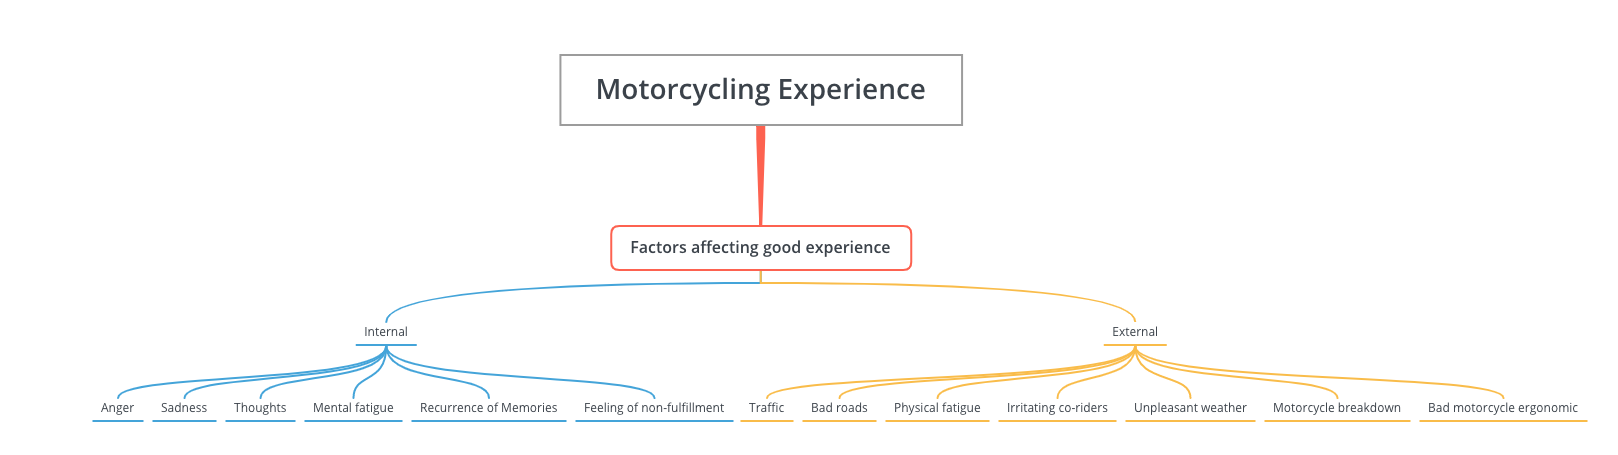 factors affecting motorcycling experience